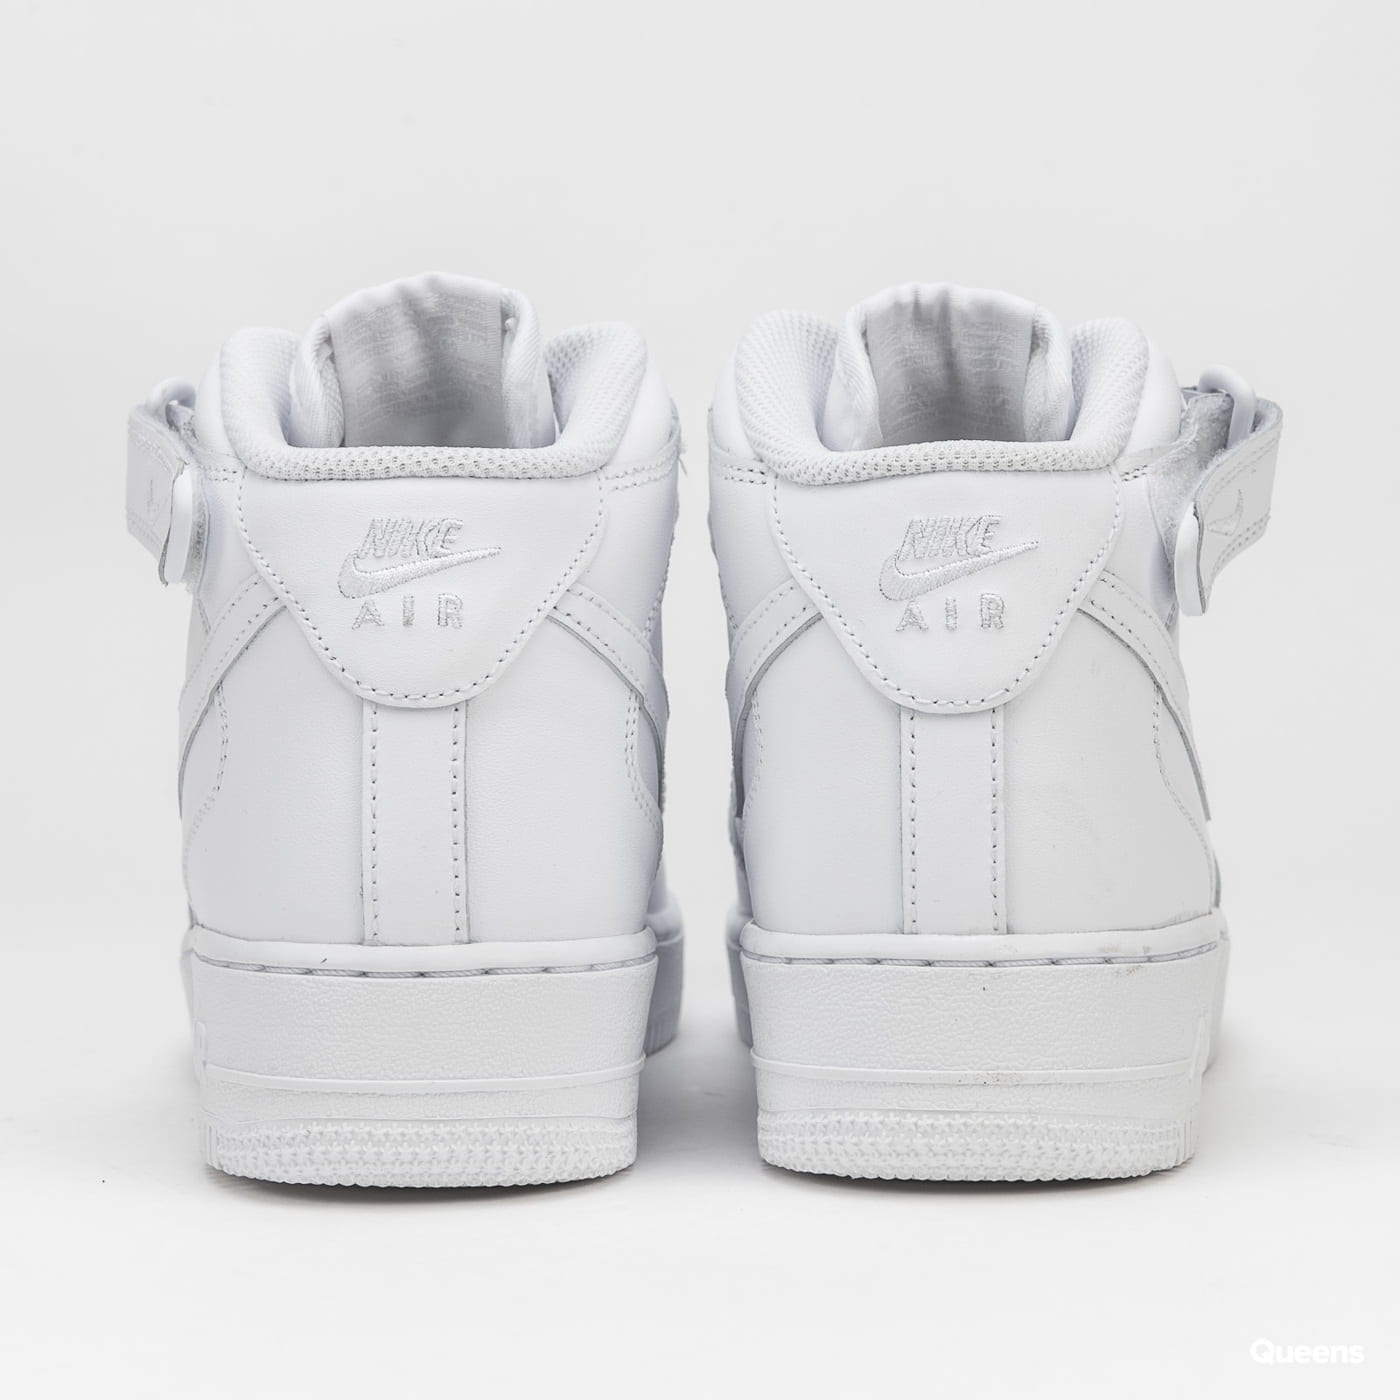 Nike Air Force 1 Mid 07 white / white